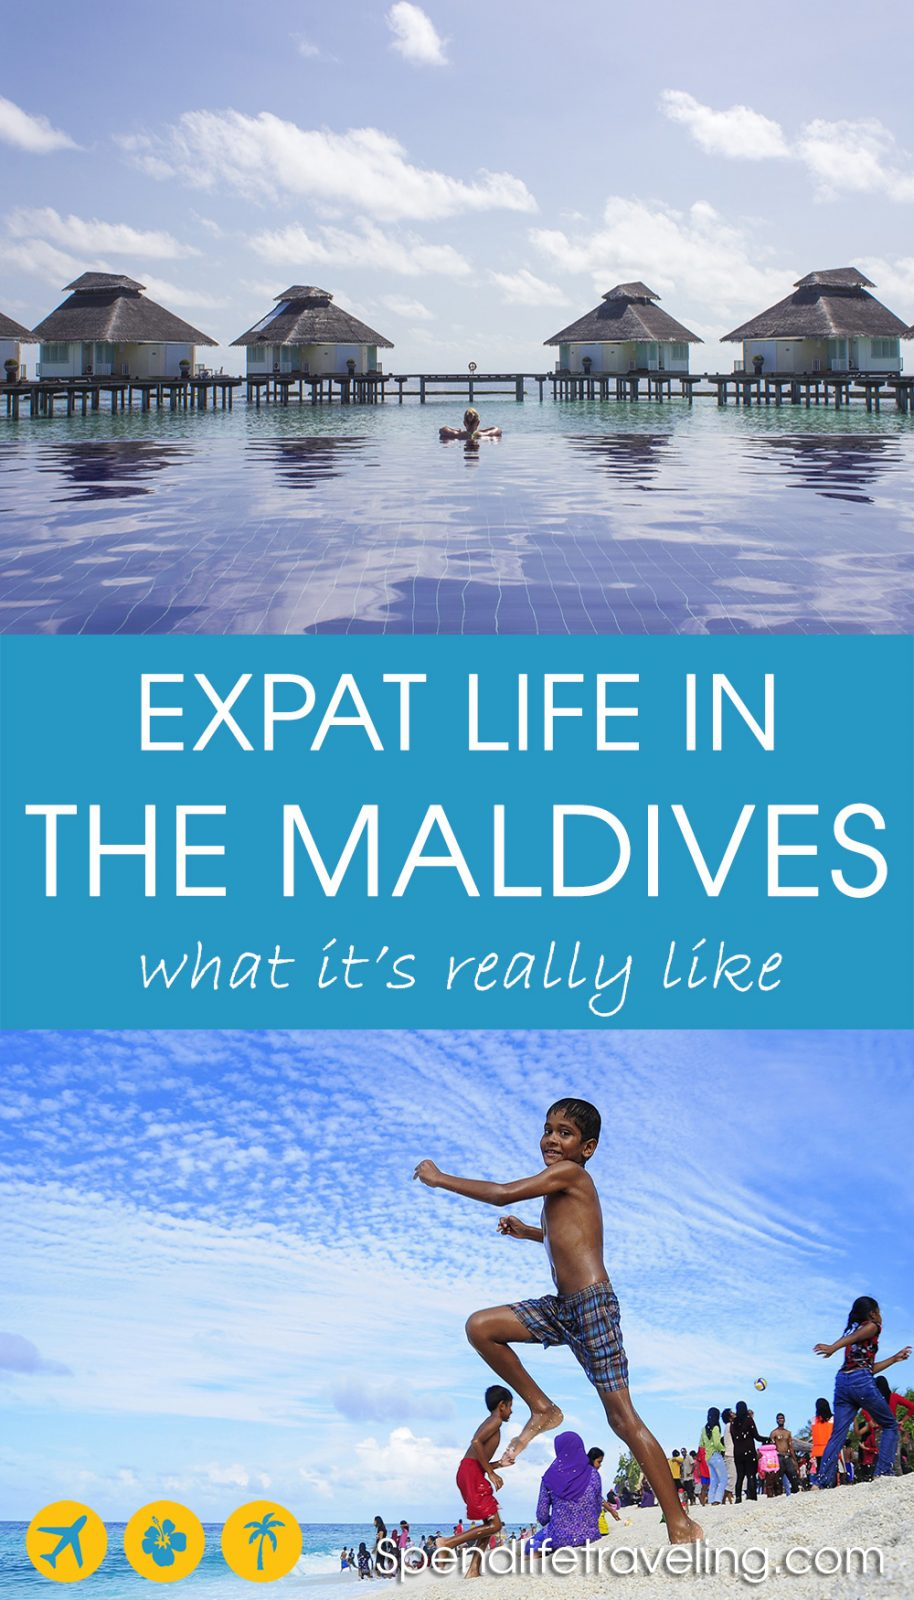 Interview with an expat about living in the Maldives. What is it really like to move to a place seen as paradise and a dream destination by so many? But an island nation that is at the same time struggling with corruption and a strict religion... #Maldives #expat #moveabroad #lifeabroad